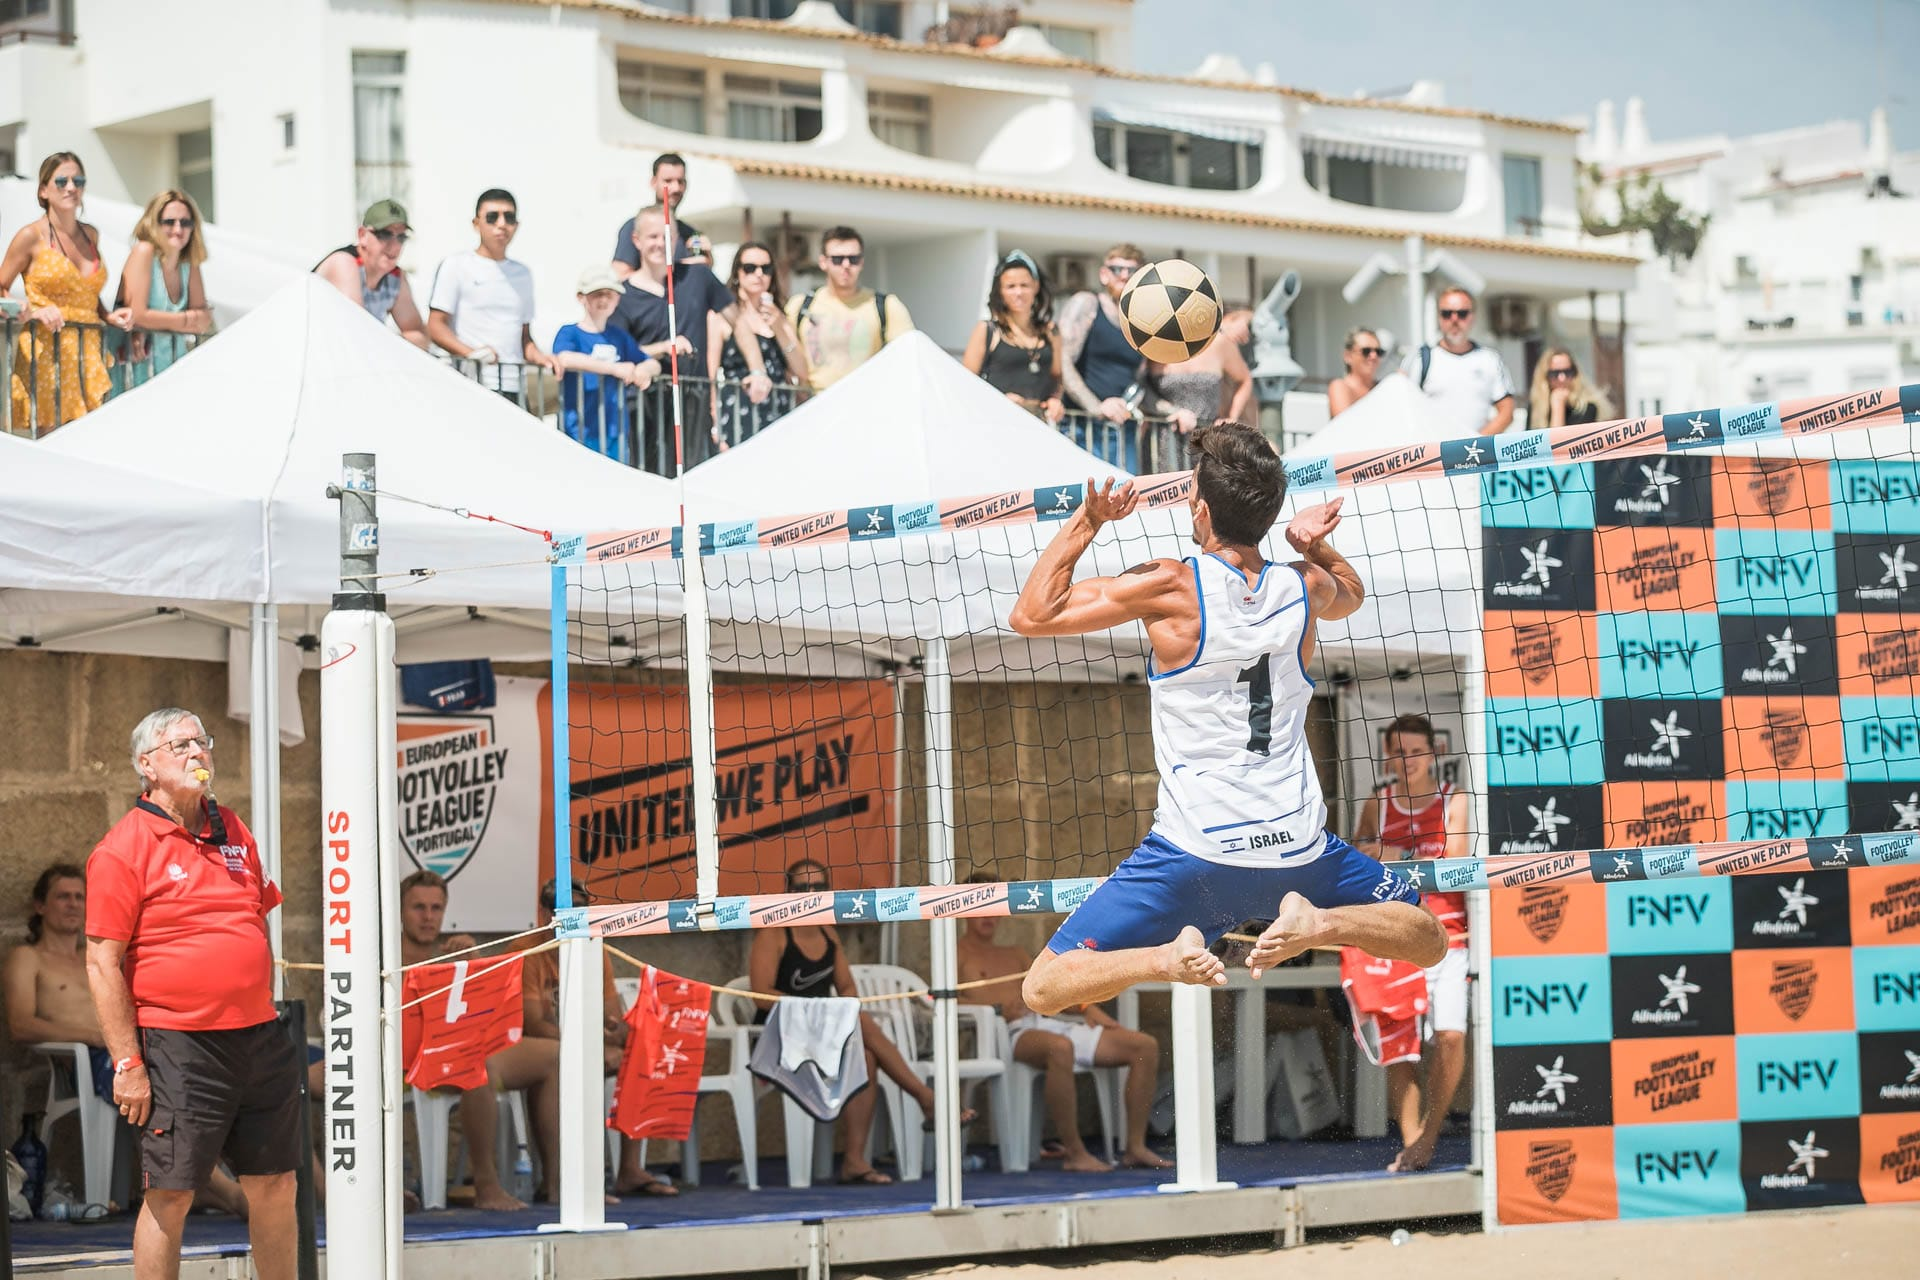 European Footvolley League 2019 - Albufeira, Portugal - Austria 1, Spain, Israel and Italy in the quarterfinals